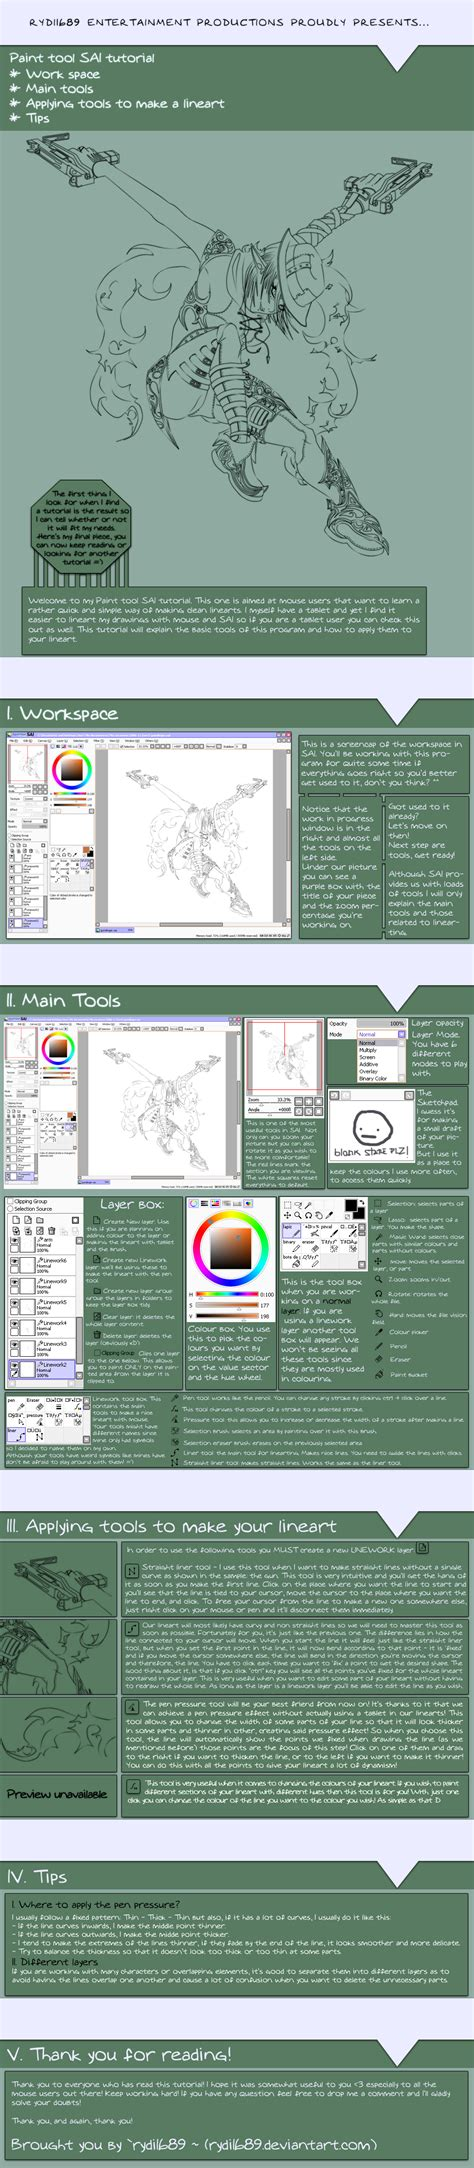 paint tool sai tutorial using mouse paint tool sai tutorial by rydi1689 on deviantart